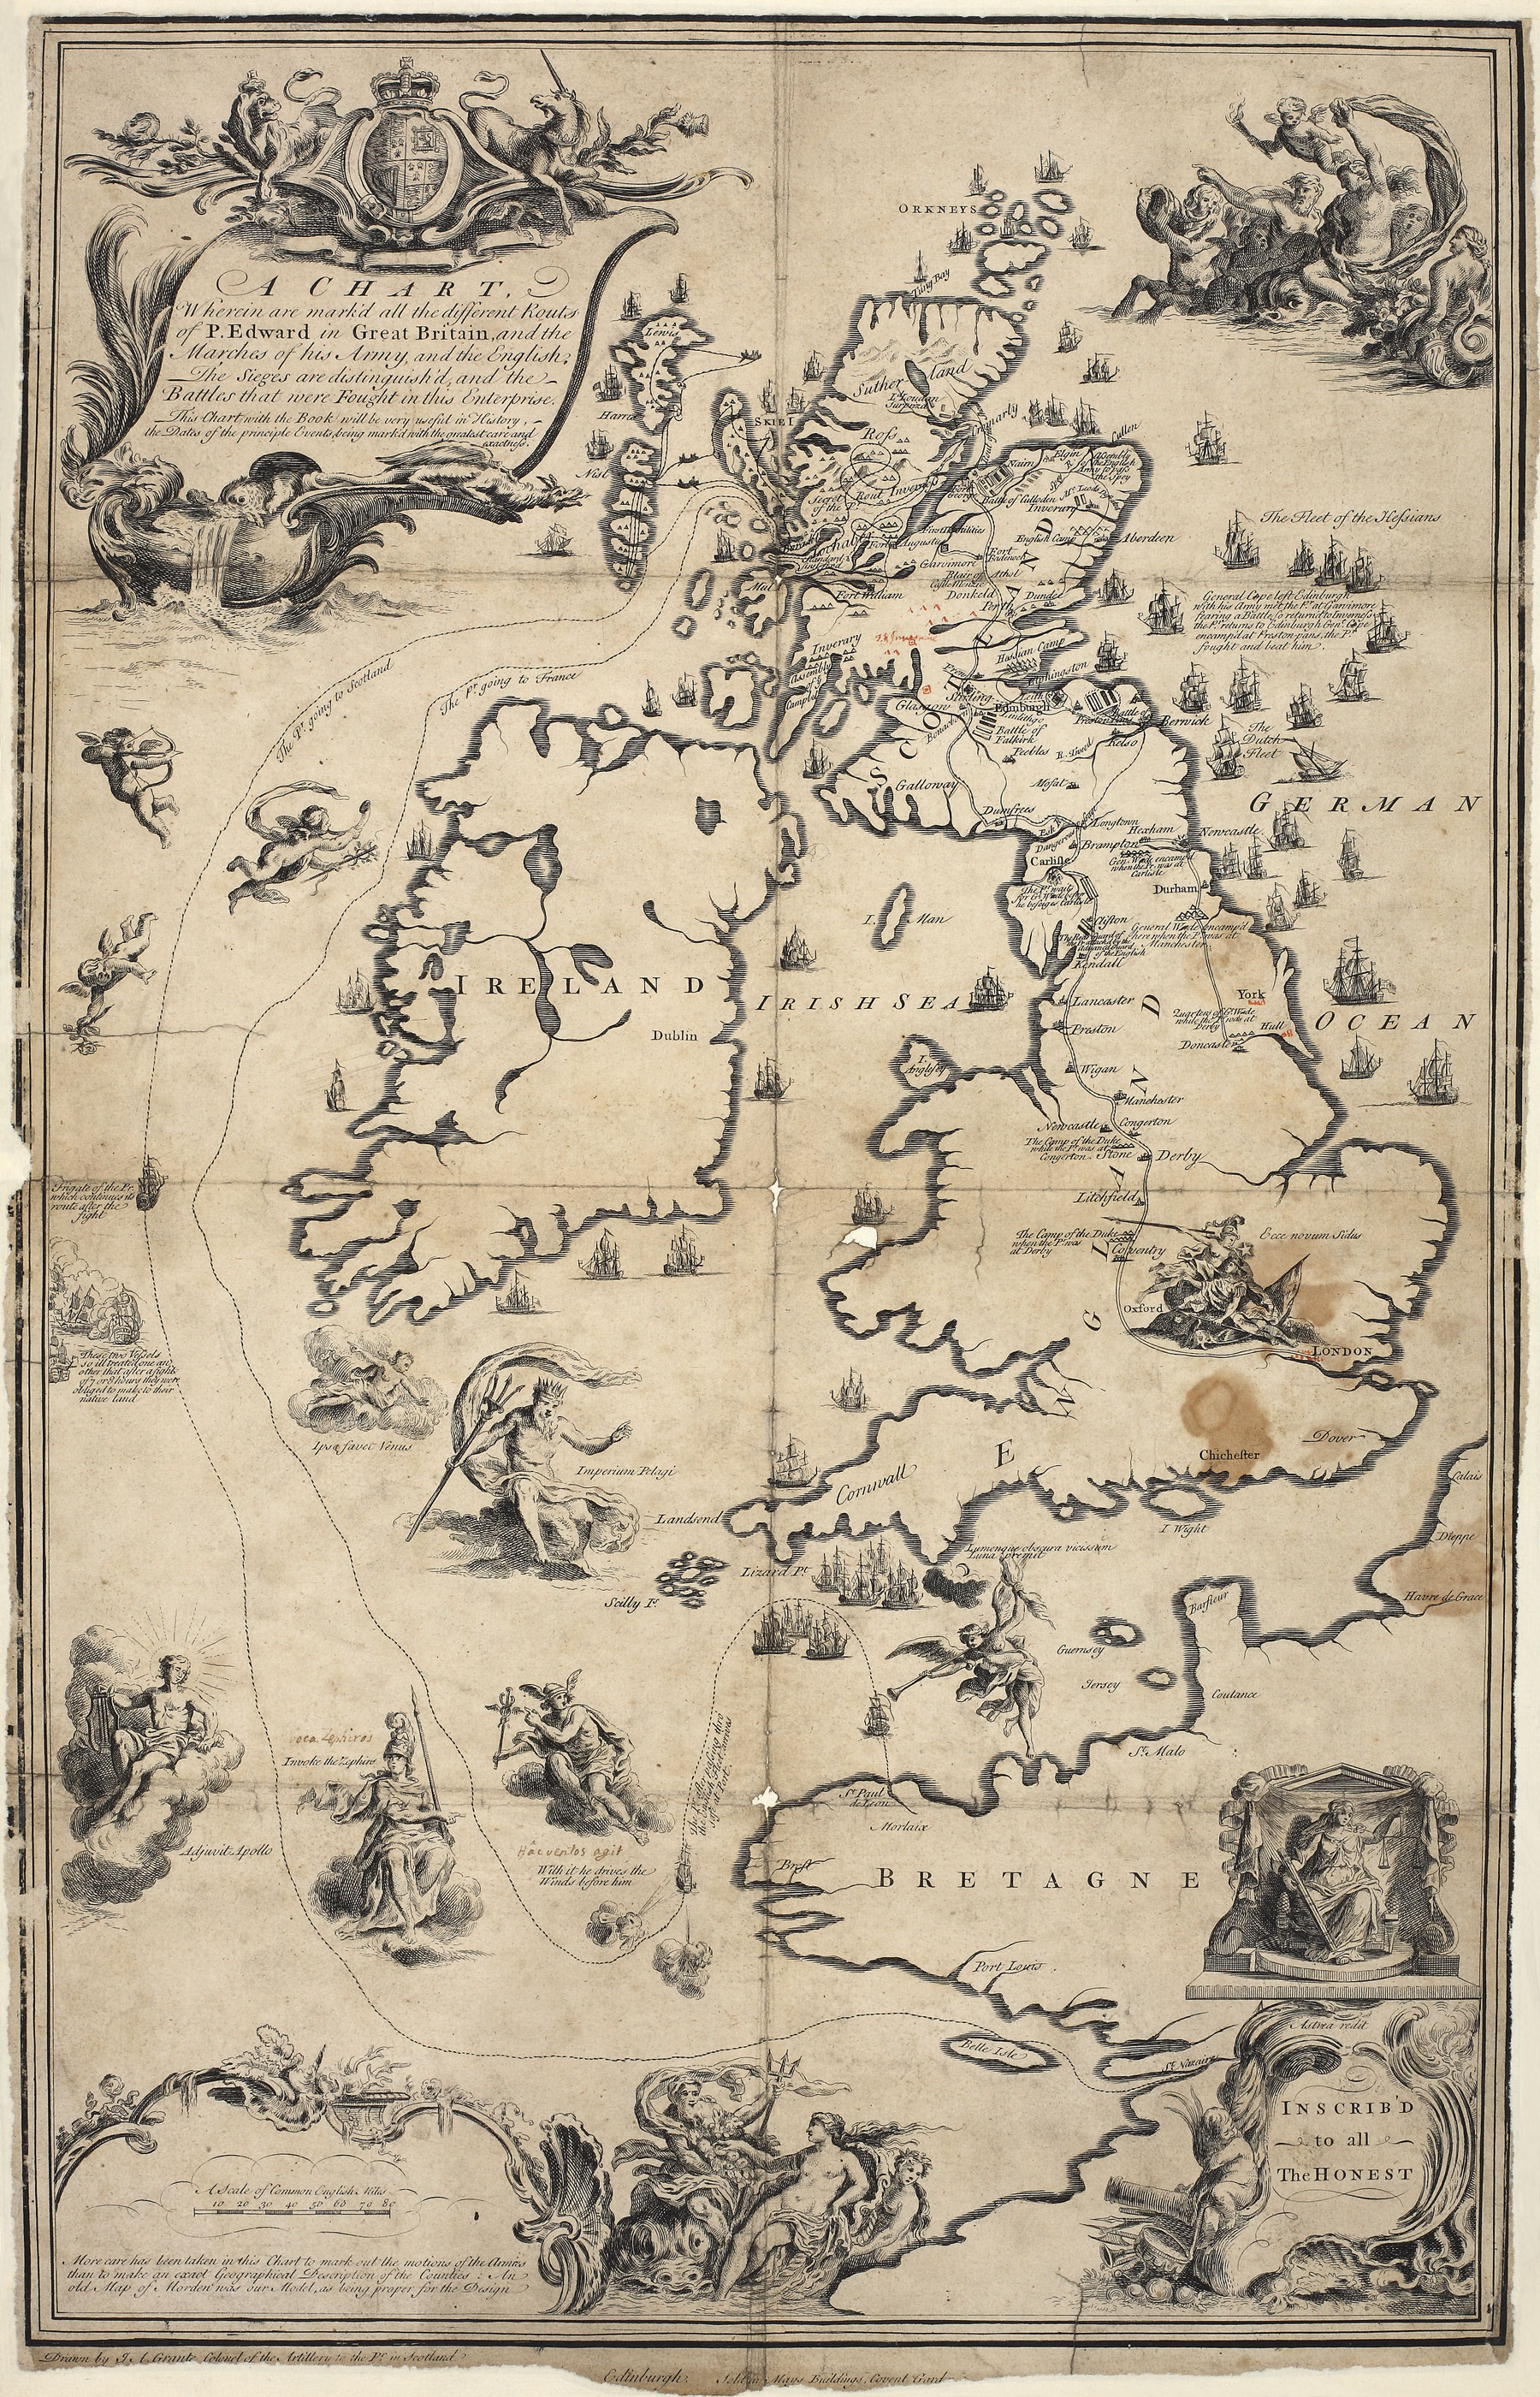 Map of Great Britain, MPF 1/2